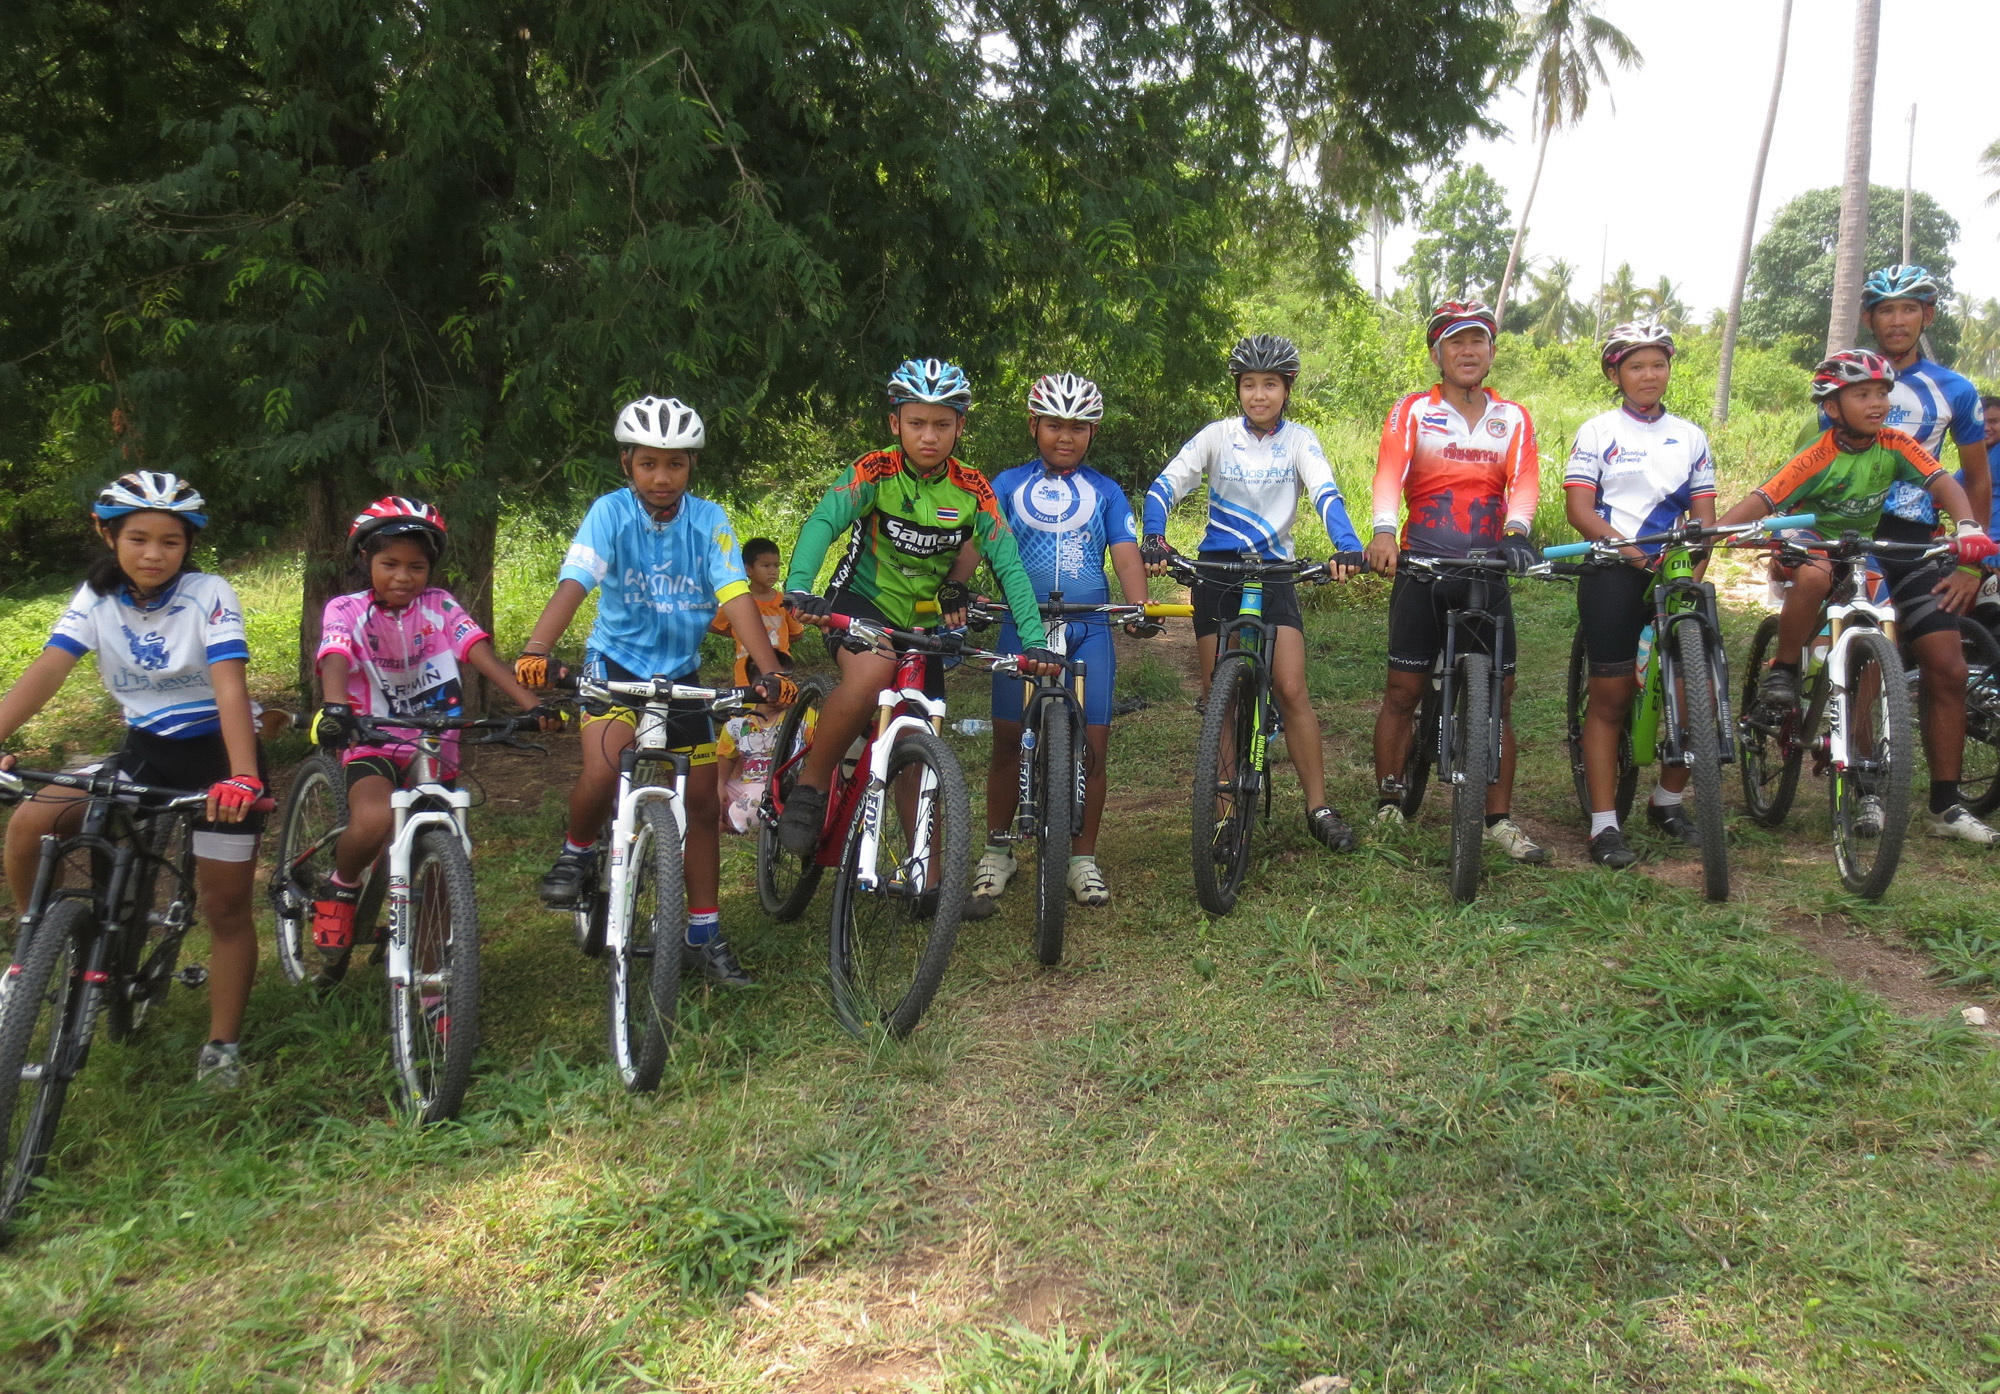 Samui MTB Racing Team' with three national champions | Samui Times